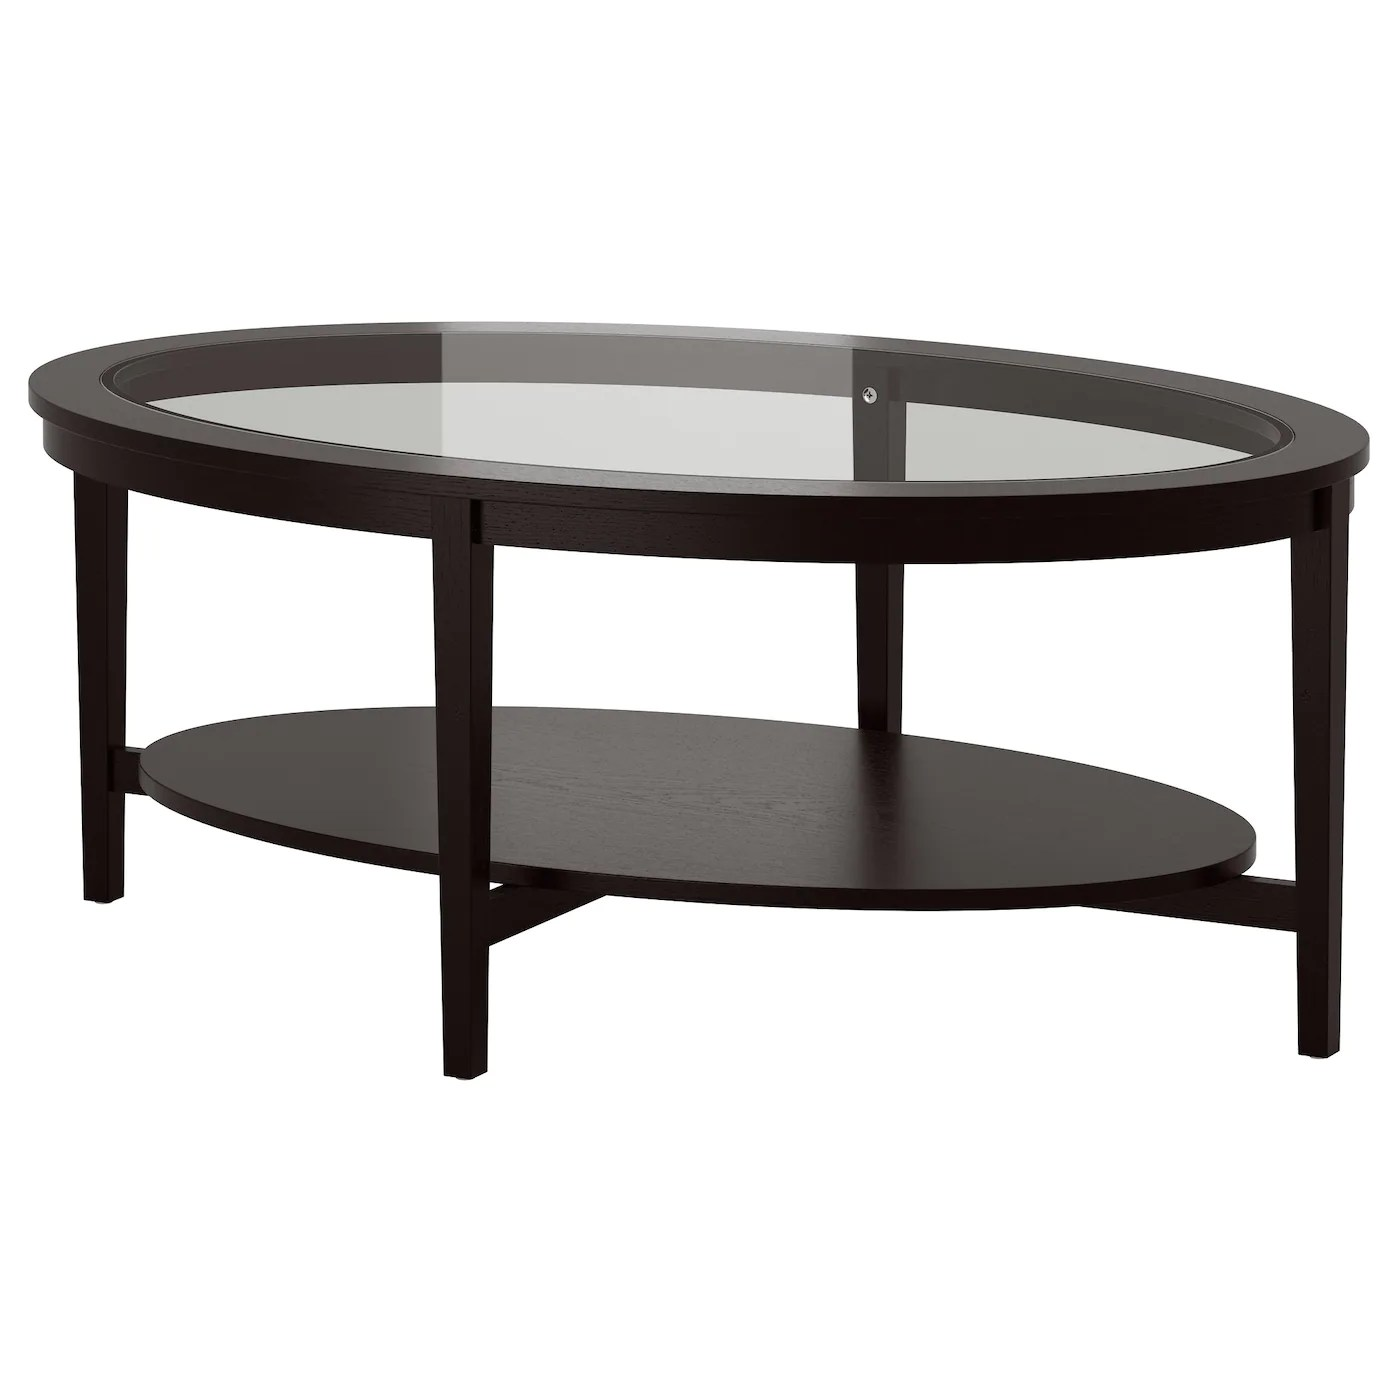 Ikea Table Basse Noir Malmsta Table Basse Brun Noir